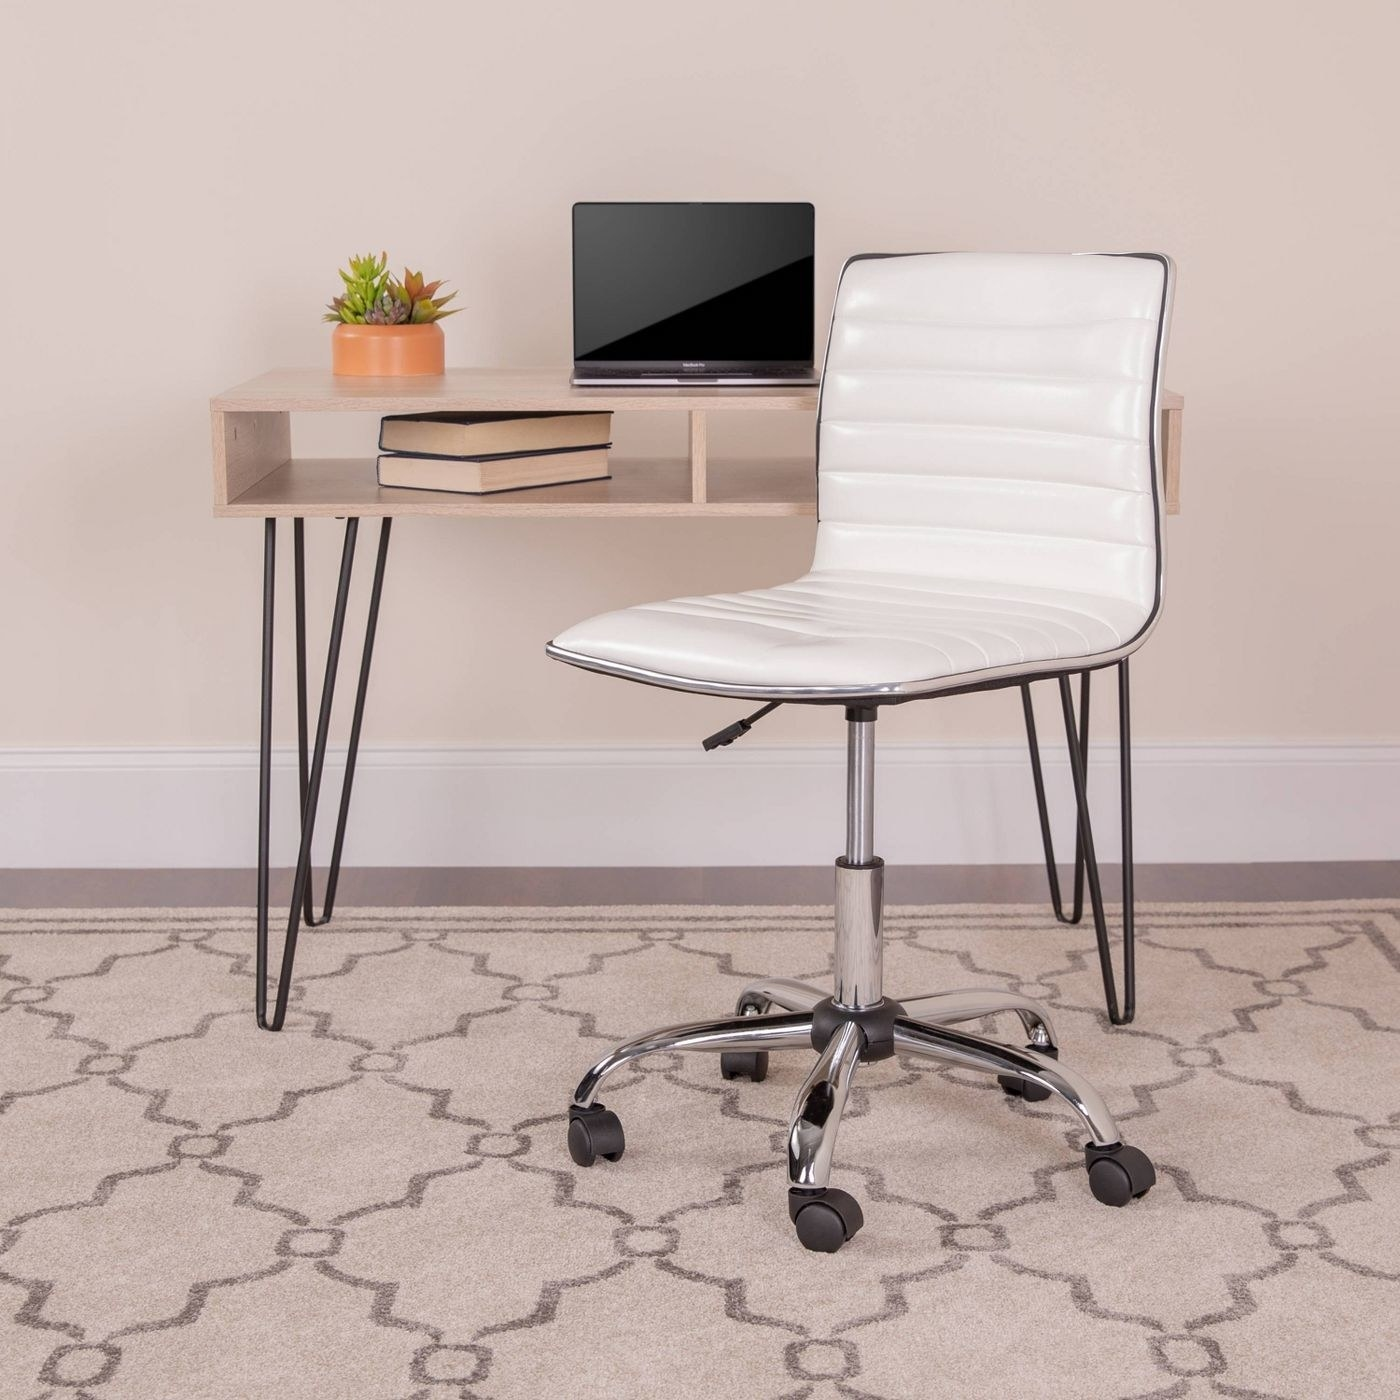 A white armless swivel office chair